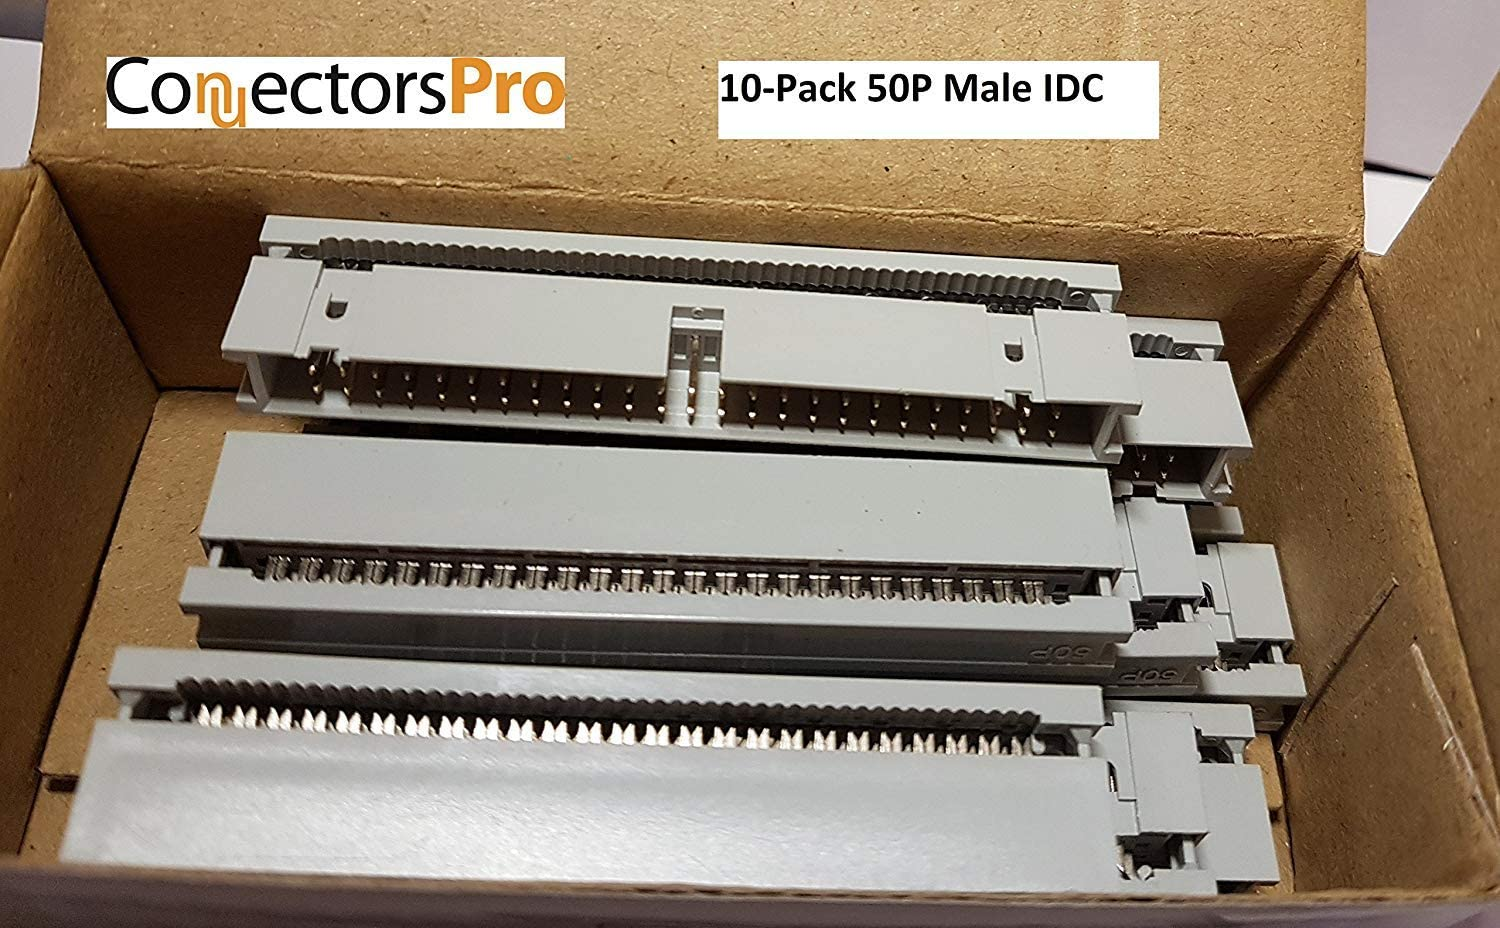 50 Pins Connector Connectors Pro 10-Pack 2X25 50P Dual Rows 2.54mm Shrouded IDC Male Header